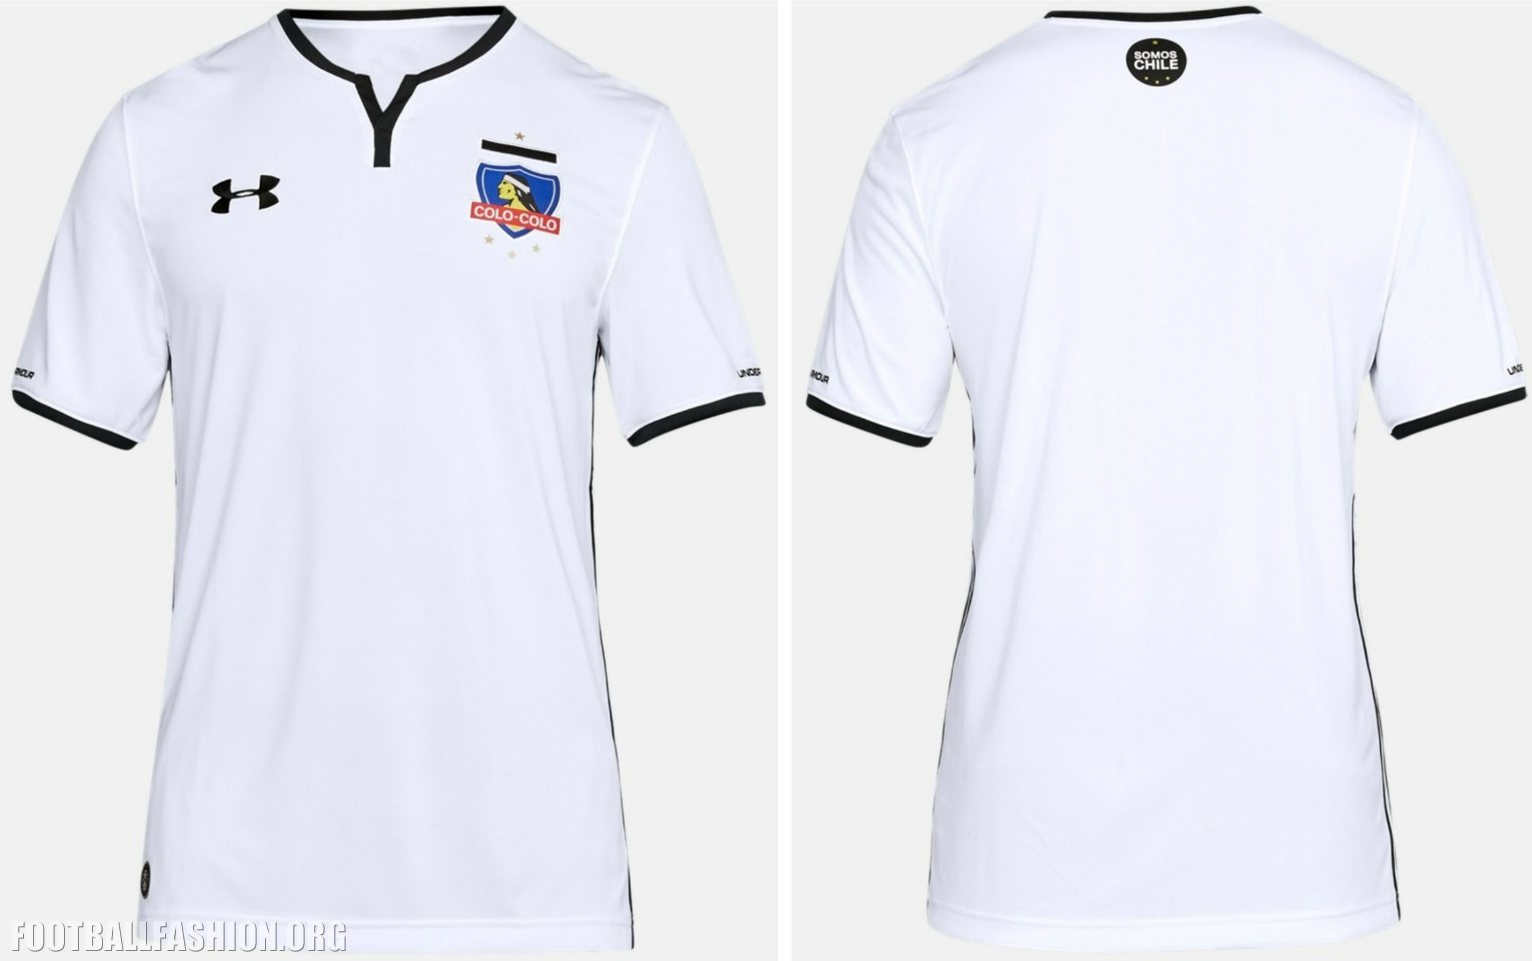 on sale fed49 38dc2 Colo-Colo 2018 Under Armour Home Kit - FOOTBALL FASHION.ORG